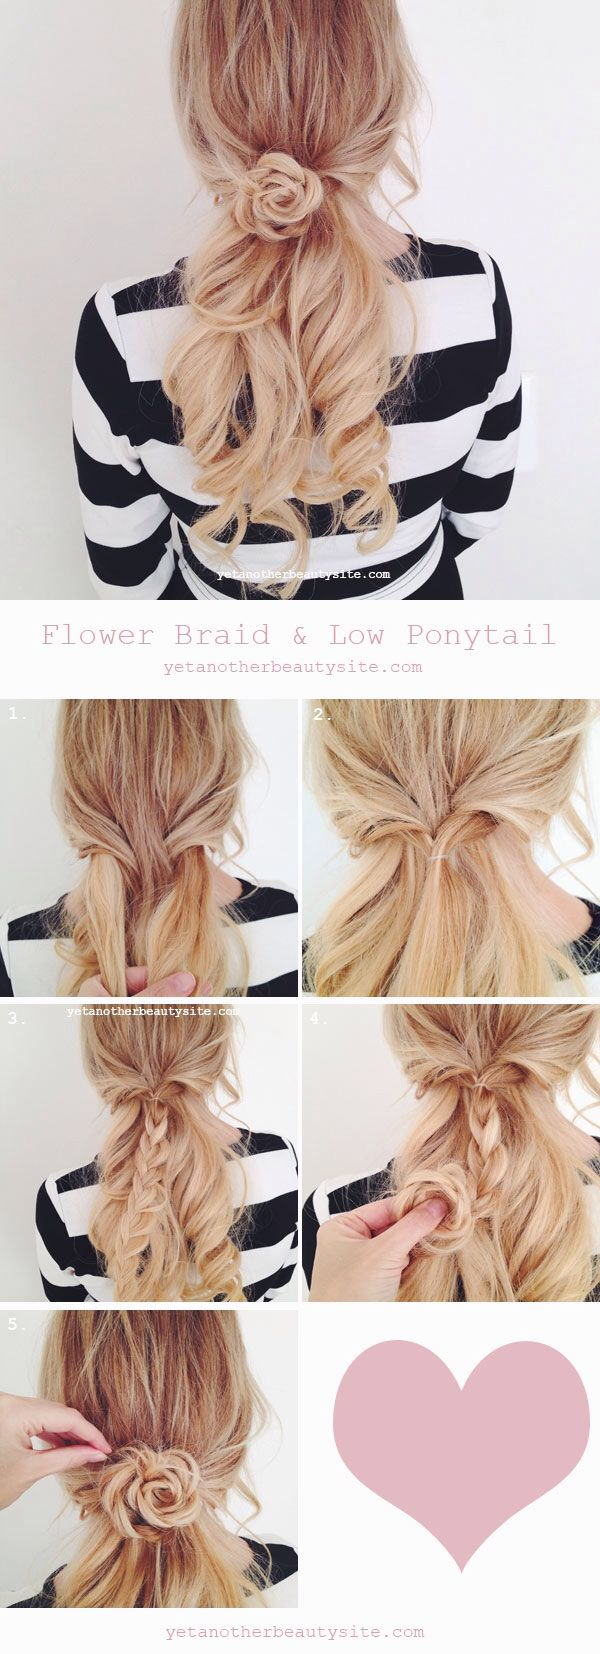 "Easy ""Flower Braid"" w pony tail. Basic 3 strand braid, loosen the tightness of one strand & roll with loosened strand towards outside to form flower petals."